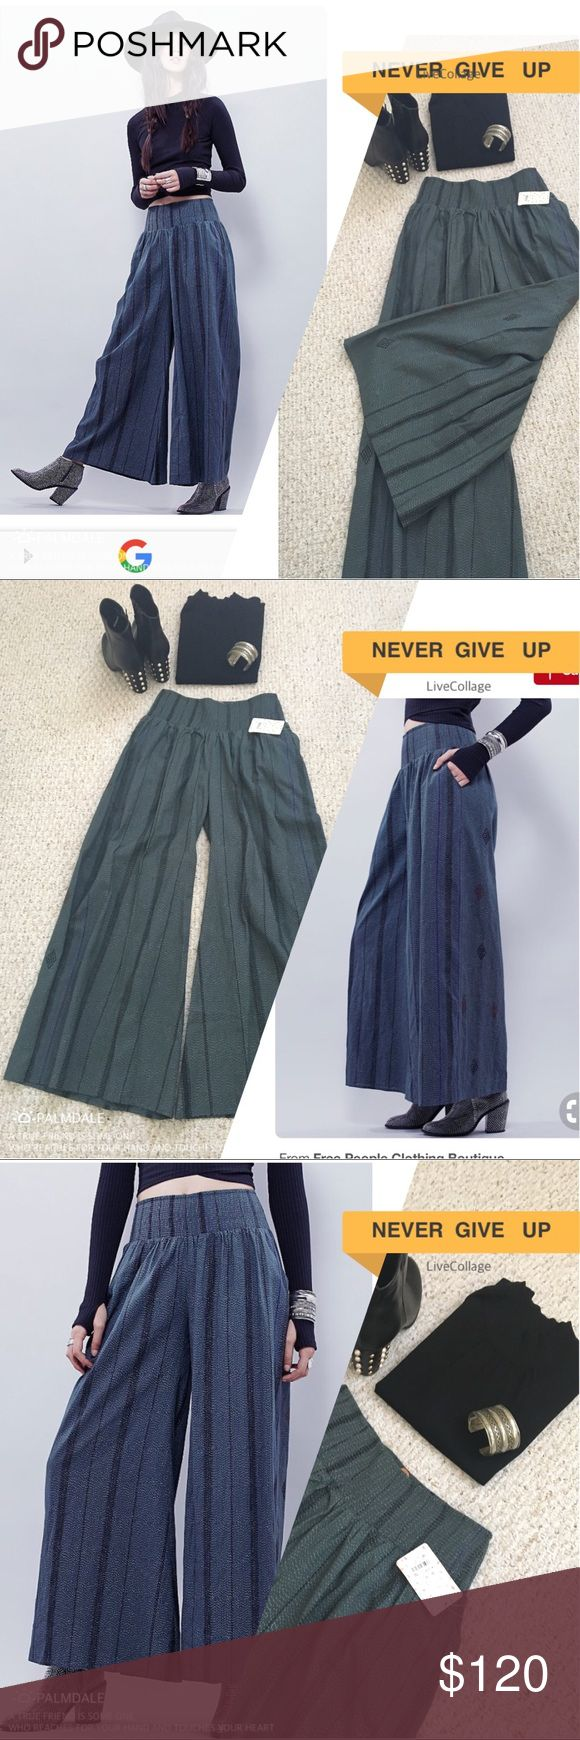 """Free People 1️⃣Something Wide Leg Palazzo Pants+📌 Free People One Something Wide Leg Palazzo Pants Featuring Thick Elastic Waist Band & Gorgeous Print Design. Labeled S/P. Approximately 29.5/30"""" Inseam. Color: Slate. Pair w/Chunky Heel & Fitted Top. Achieve This Look & Strut Your Stuff! Actual Style/Pants Pictured On Free People Model. +📌Free People Adorable Logo Print Red, White & Blue Fabric """"Keepsake"""" Shopping Bag w/Long Shoulder Strap  Included!! Free People Pants Wide Leg"""